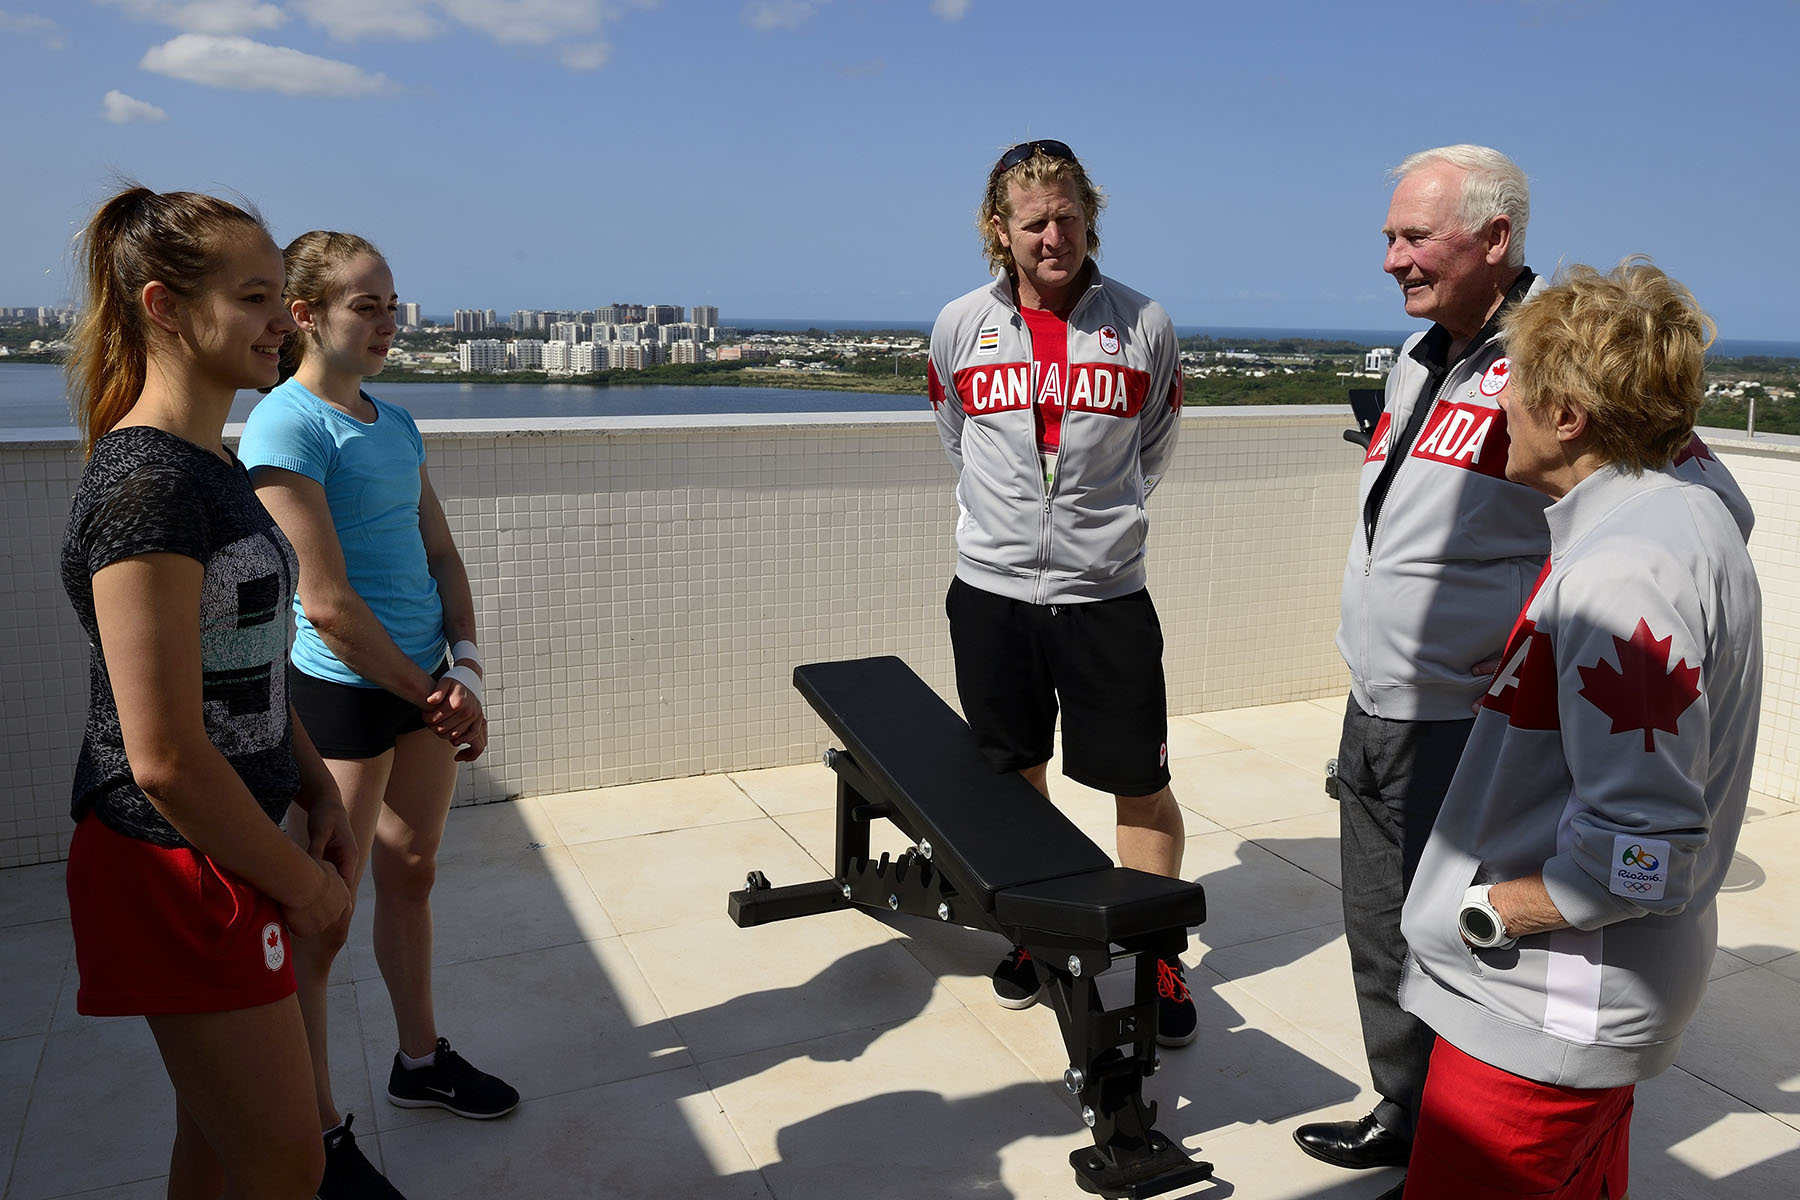 Their Excellencies met with the Canada's youngest female athlete, artistic gymnast Shallon Olsen (wearing black t-shirt).